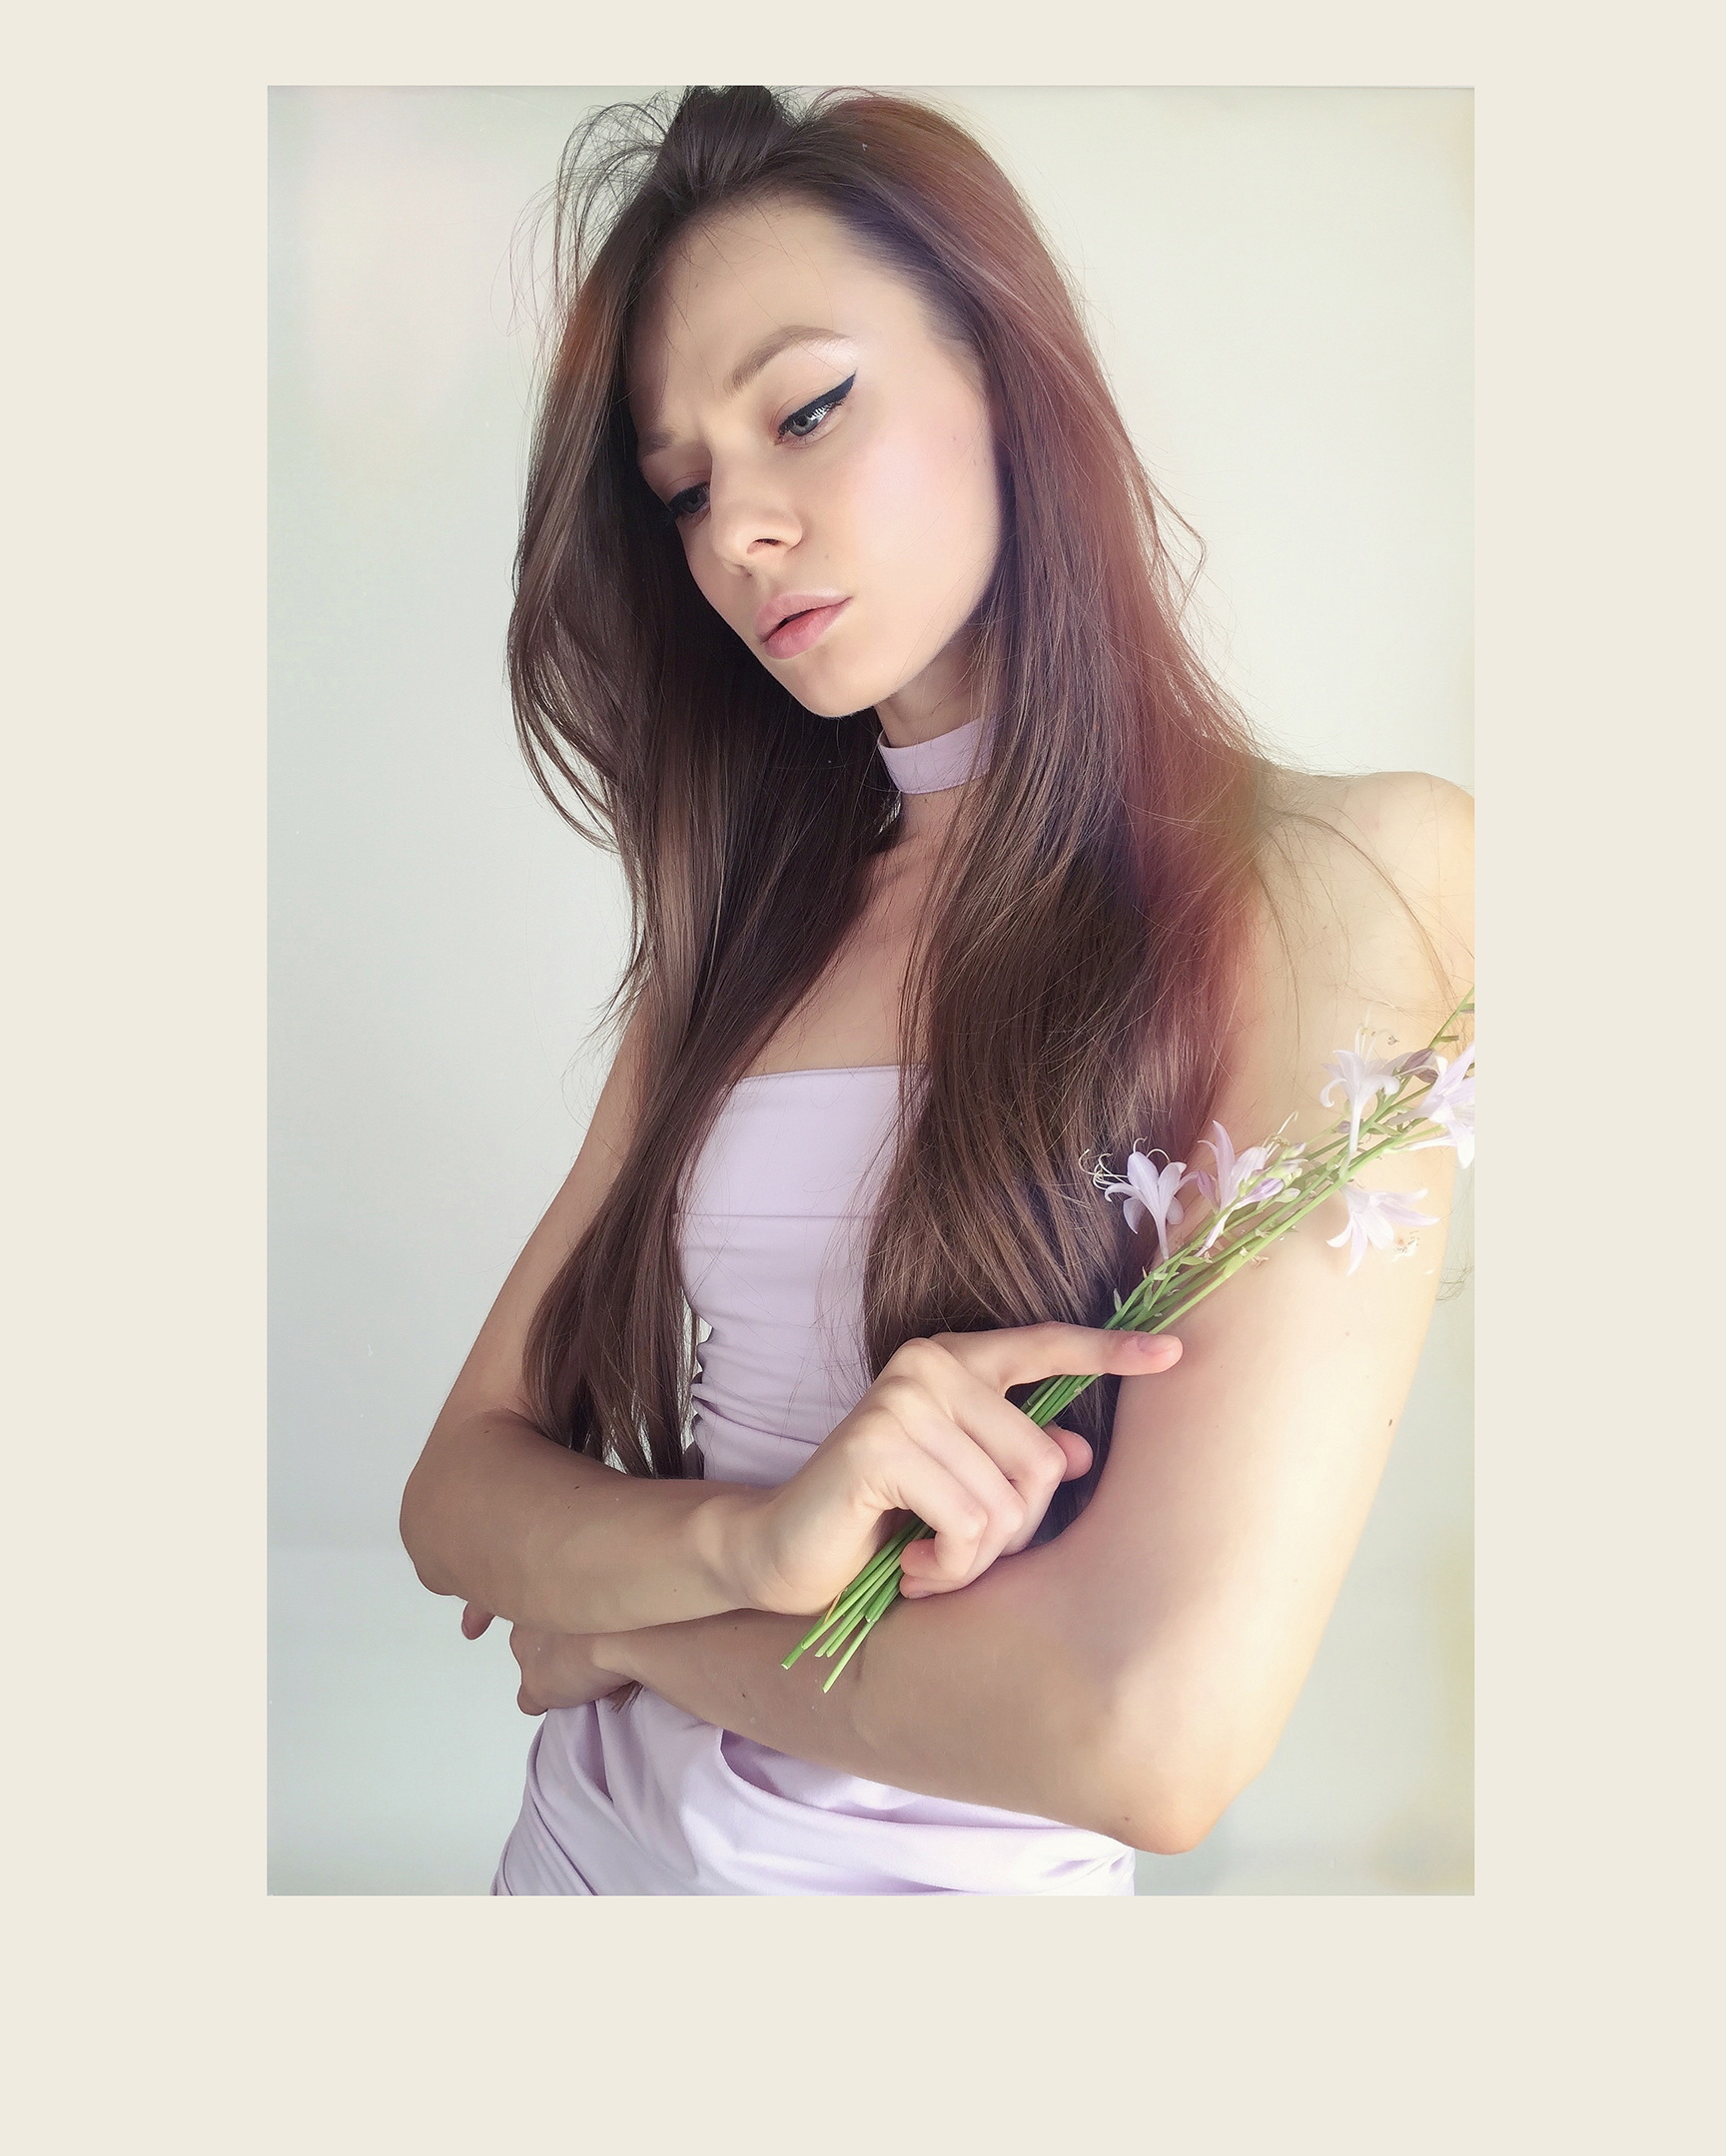 fashion blogger, model, artist Tanya She in lilac